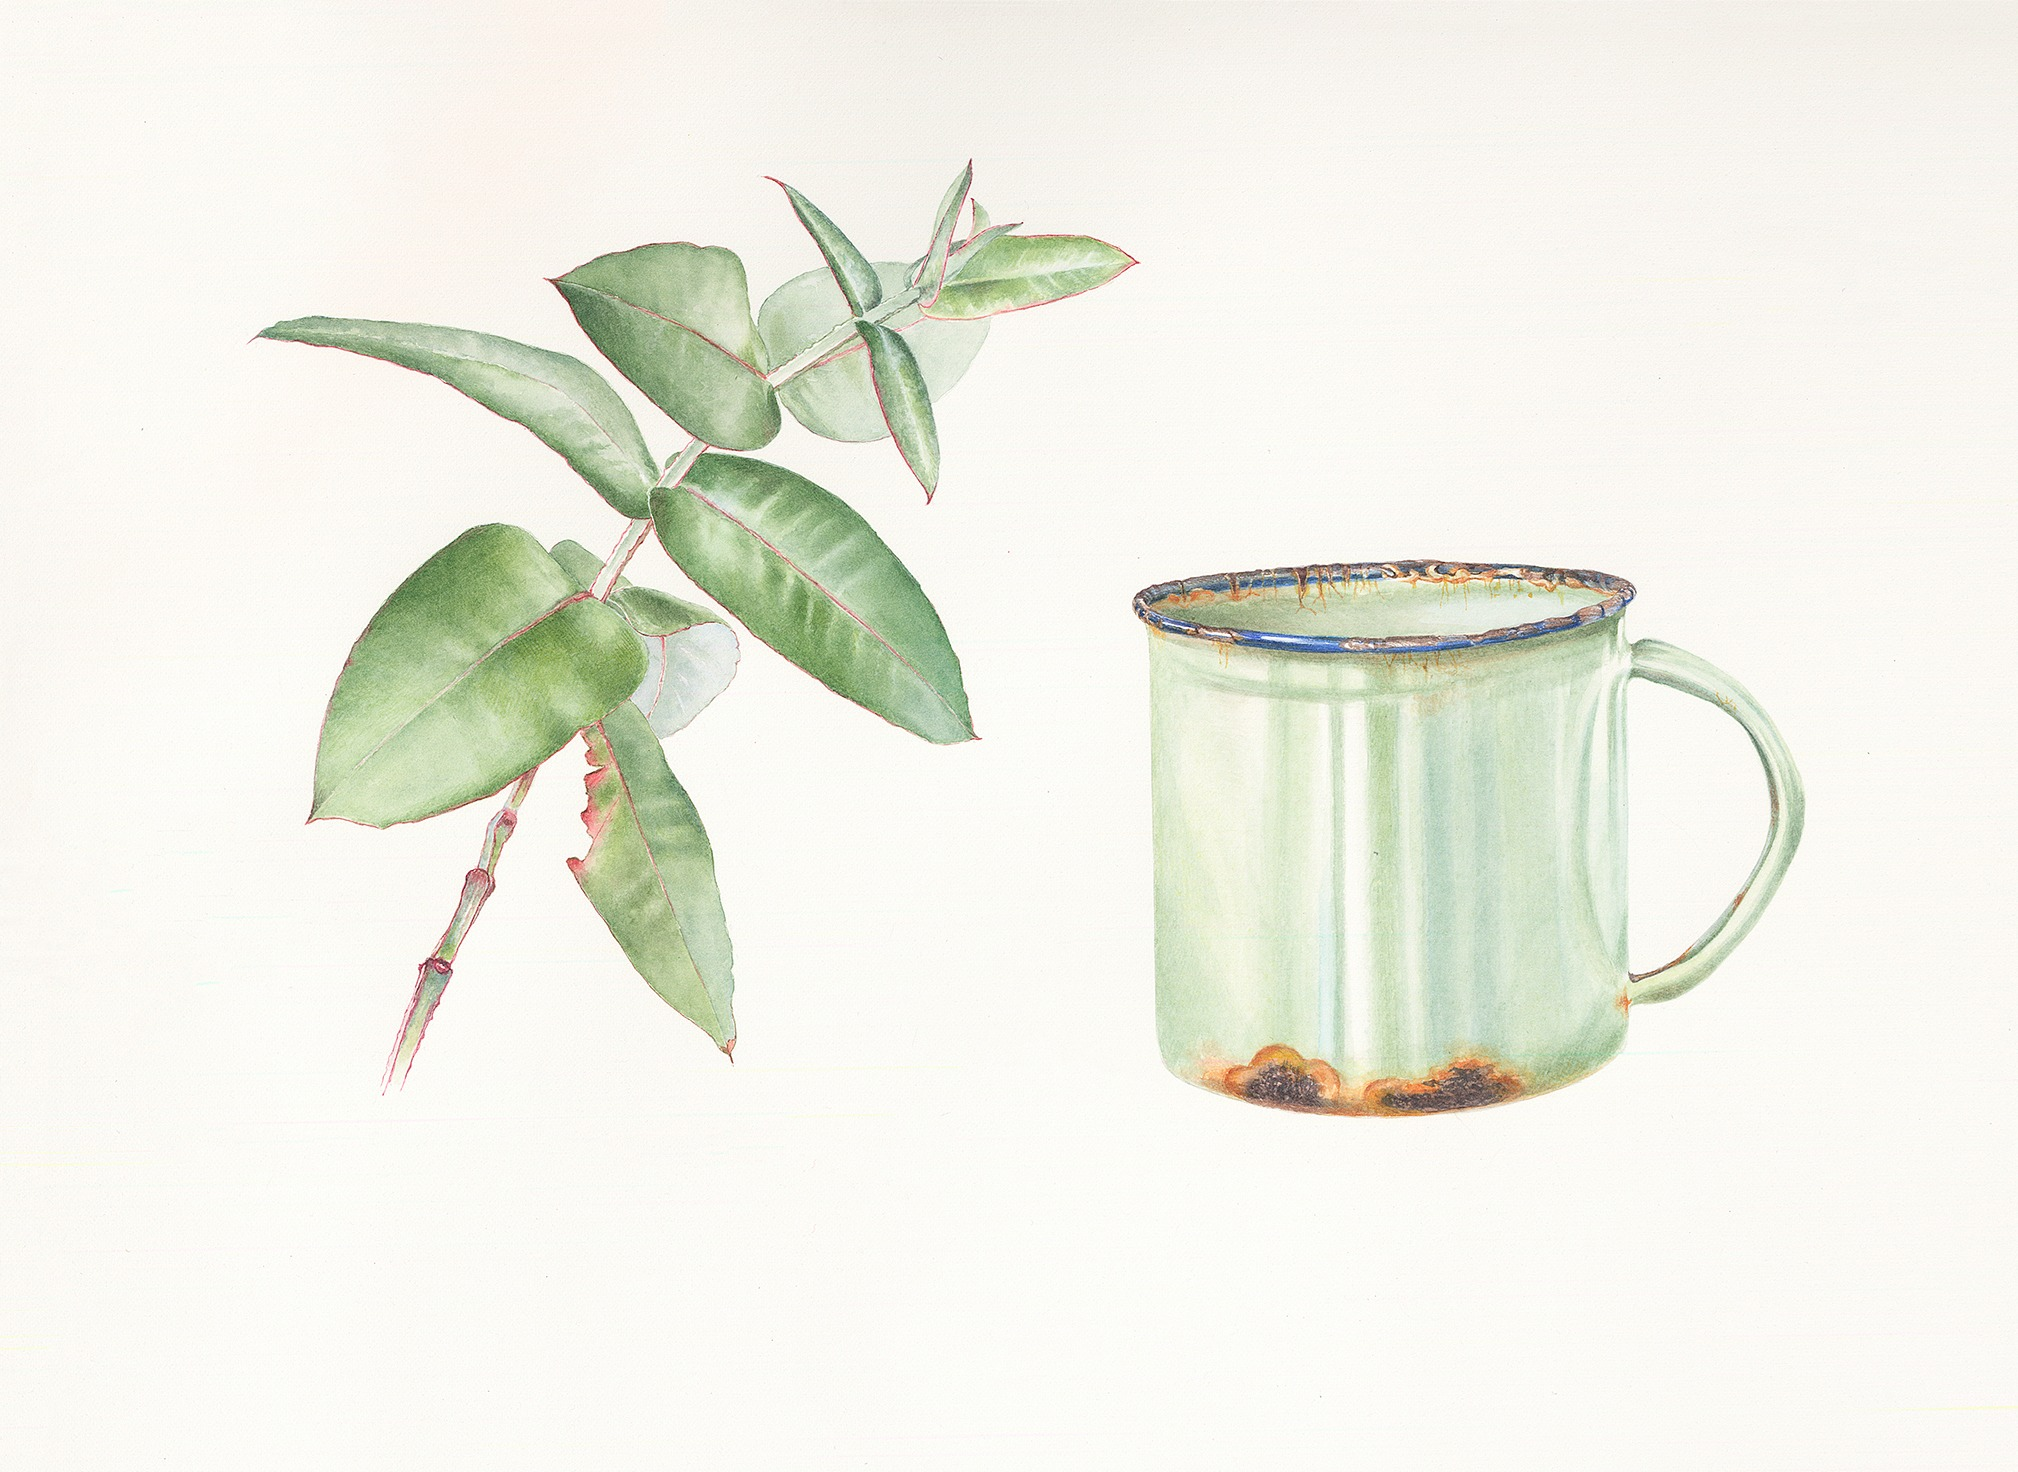 Gum leaves and enamel cup